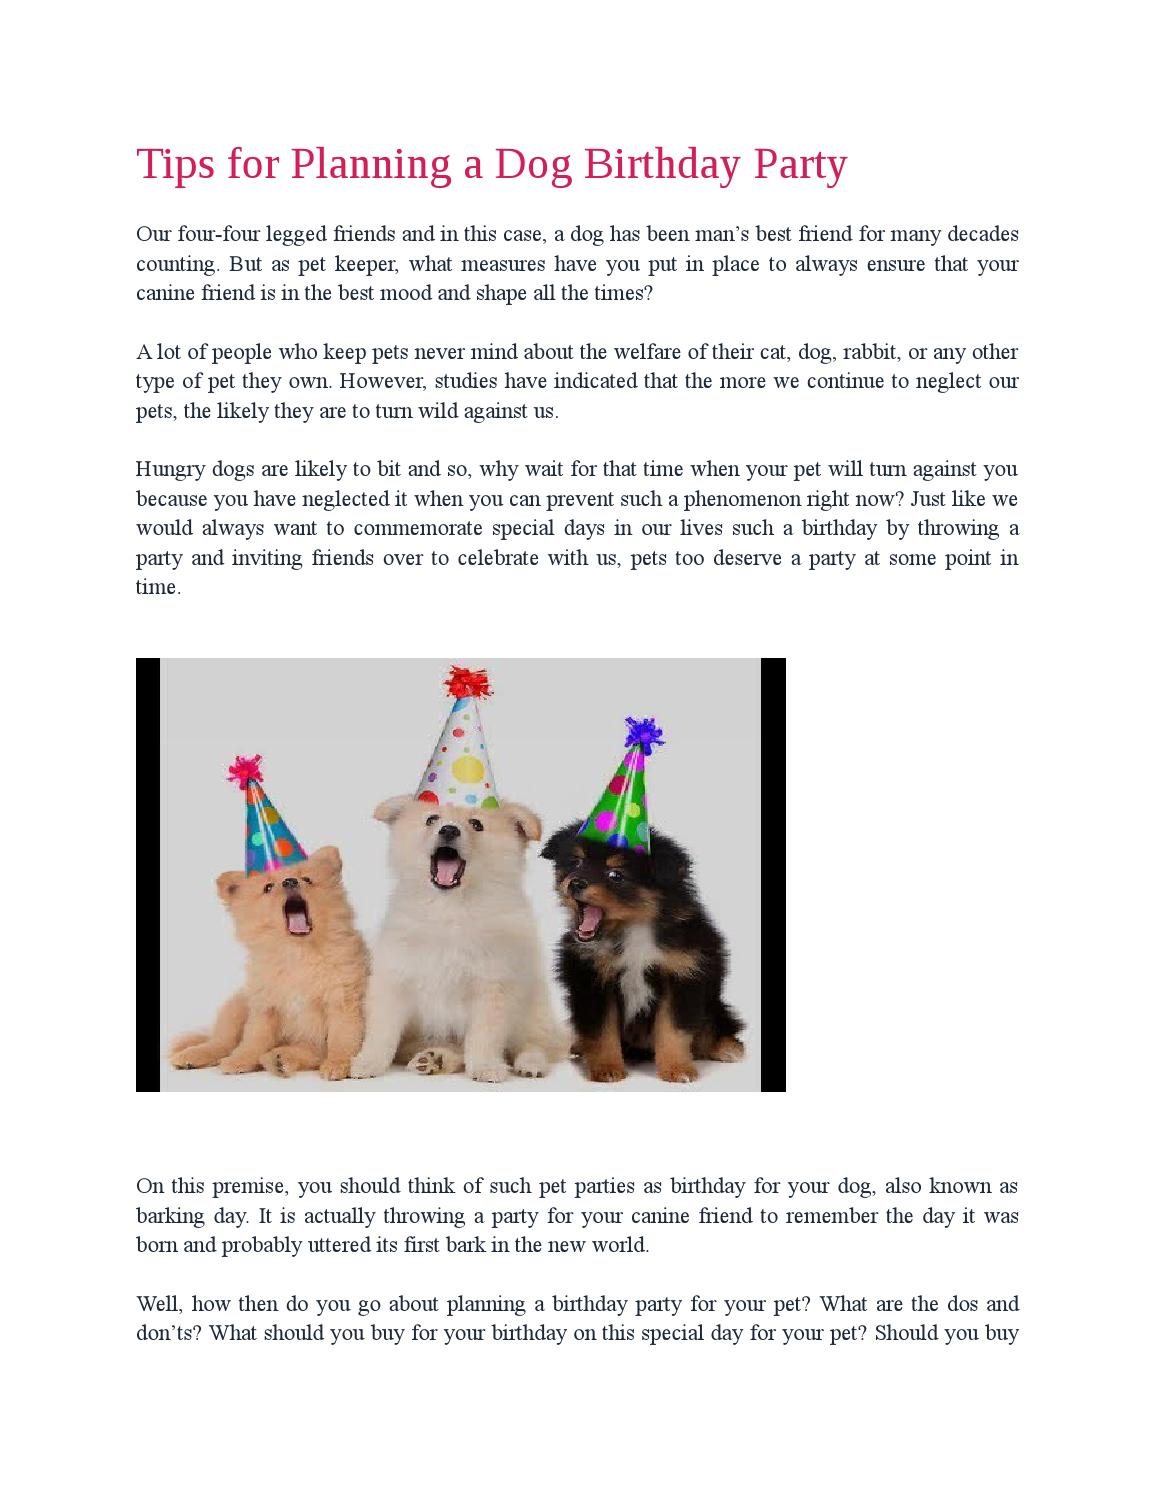 Tips for planning a dog birthday party by ollivermarttin - issuu